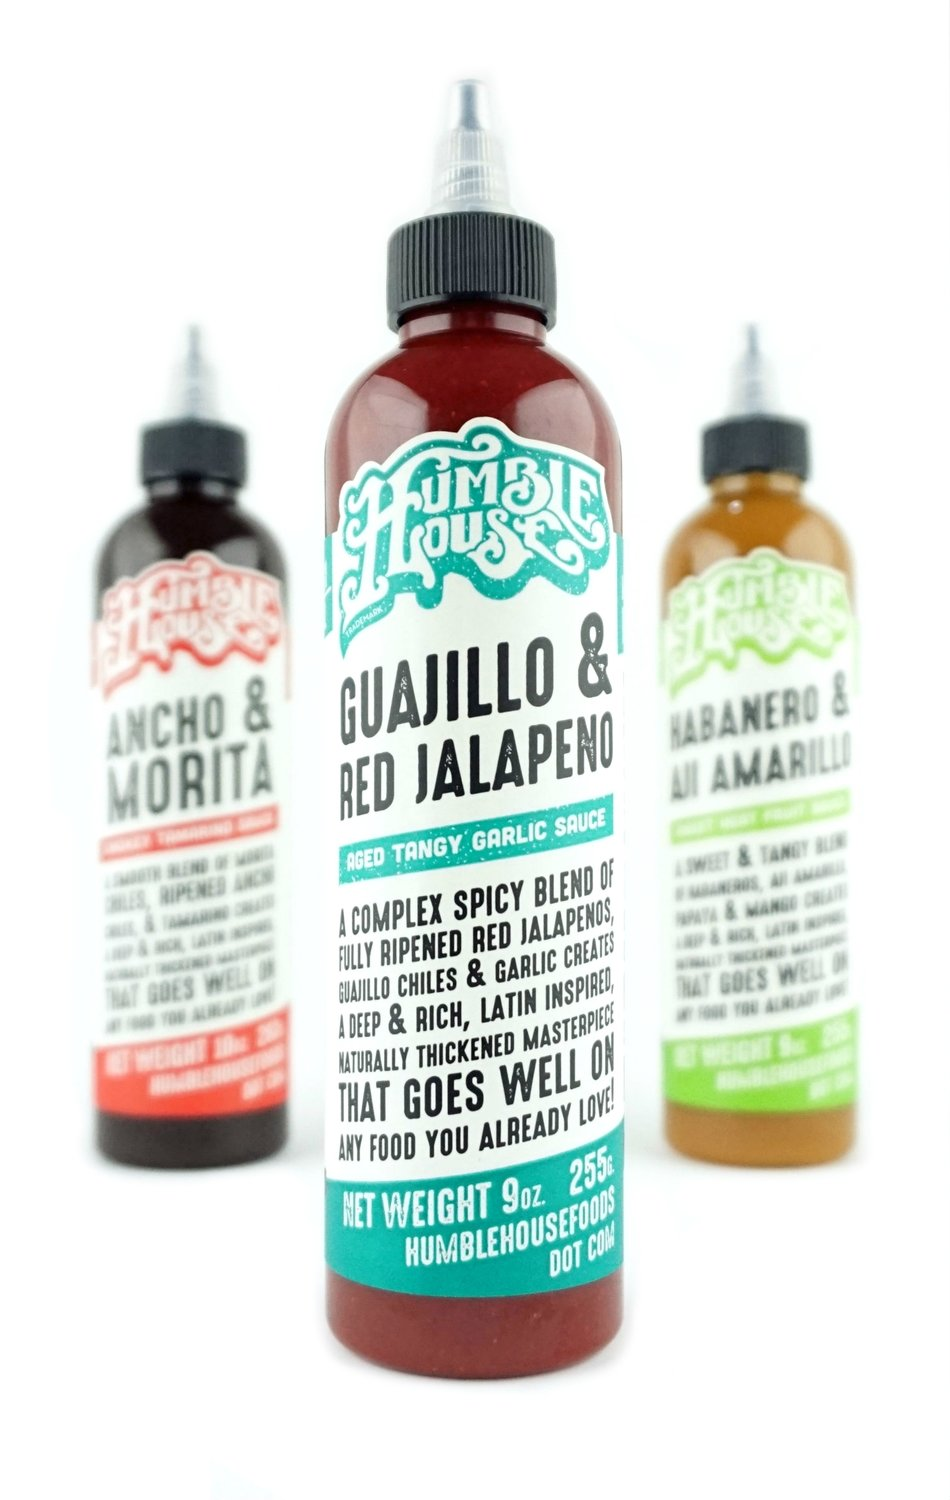 Guajillo & Red Jalapeno Hot Sauce